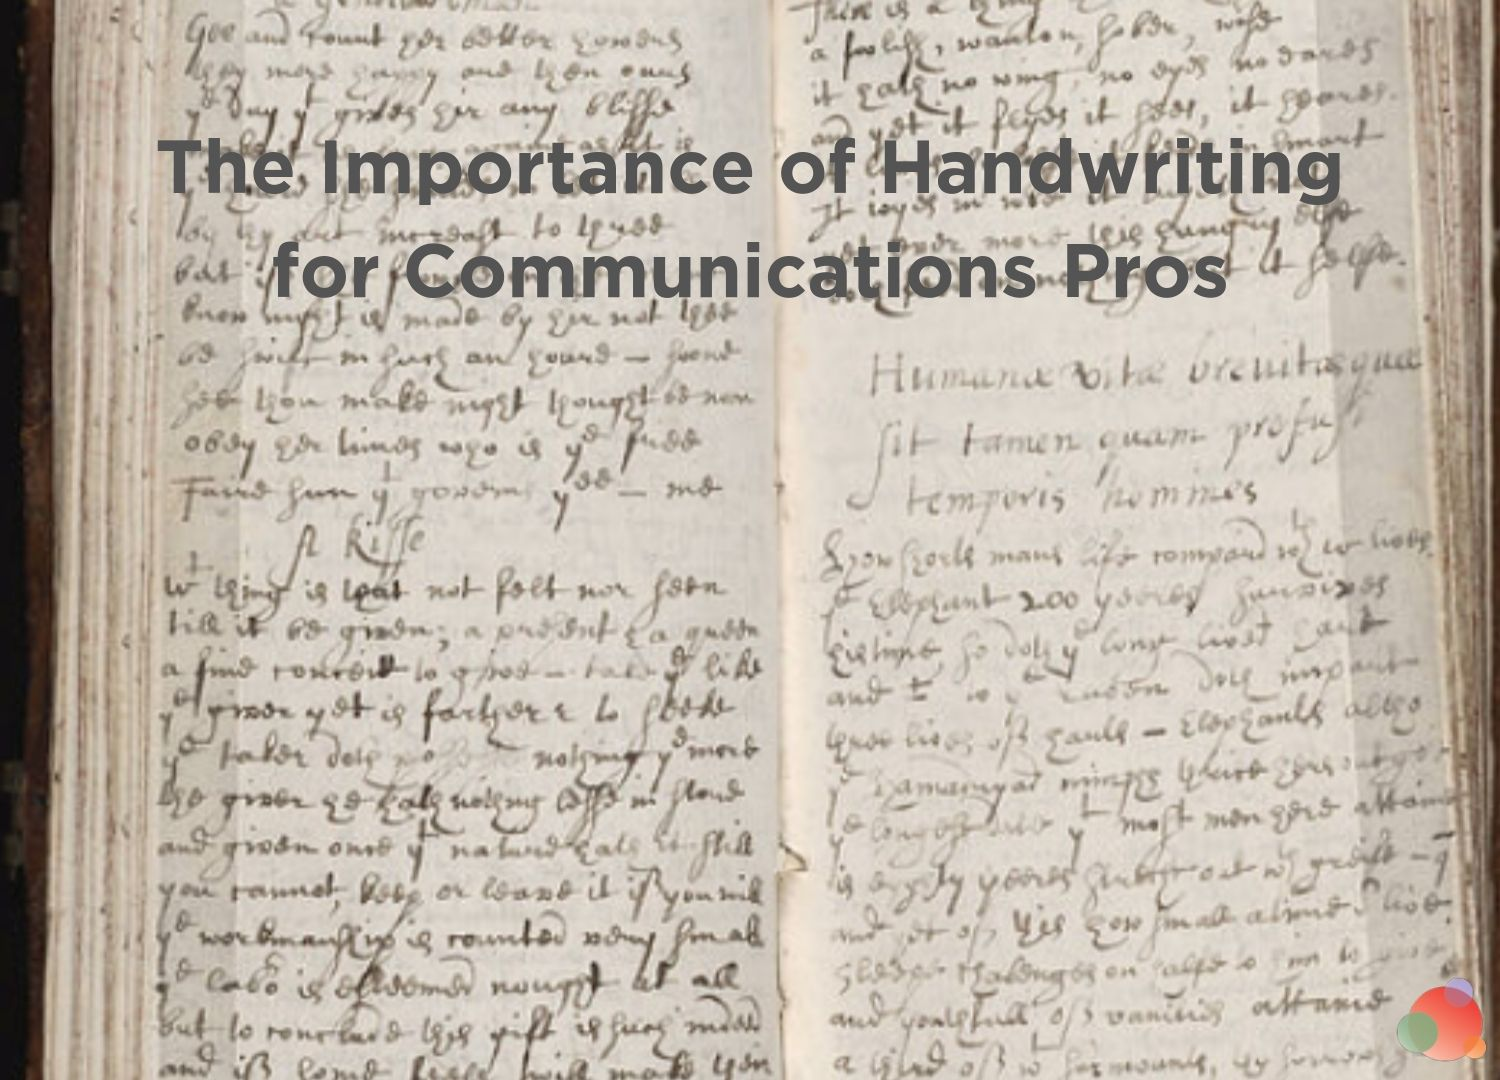 The Importance of Handwriting for Communications Pros